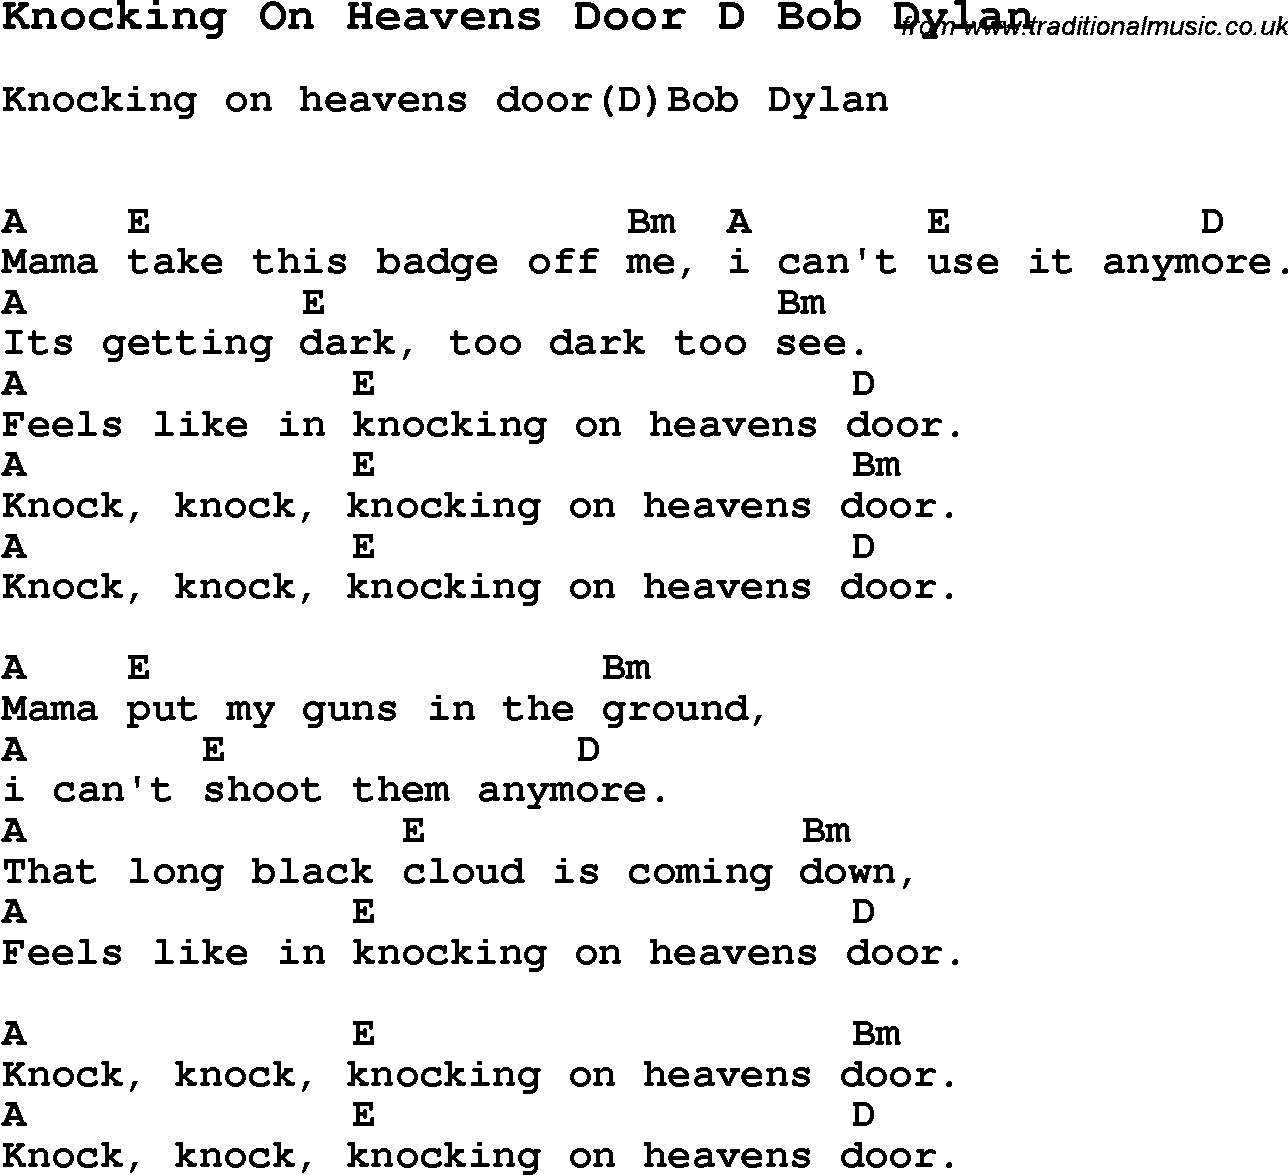 Knocking On Heavens Door Chords Song Knocking On Heavens Door D Bob Dylan Song Lyric For Vocal